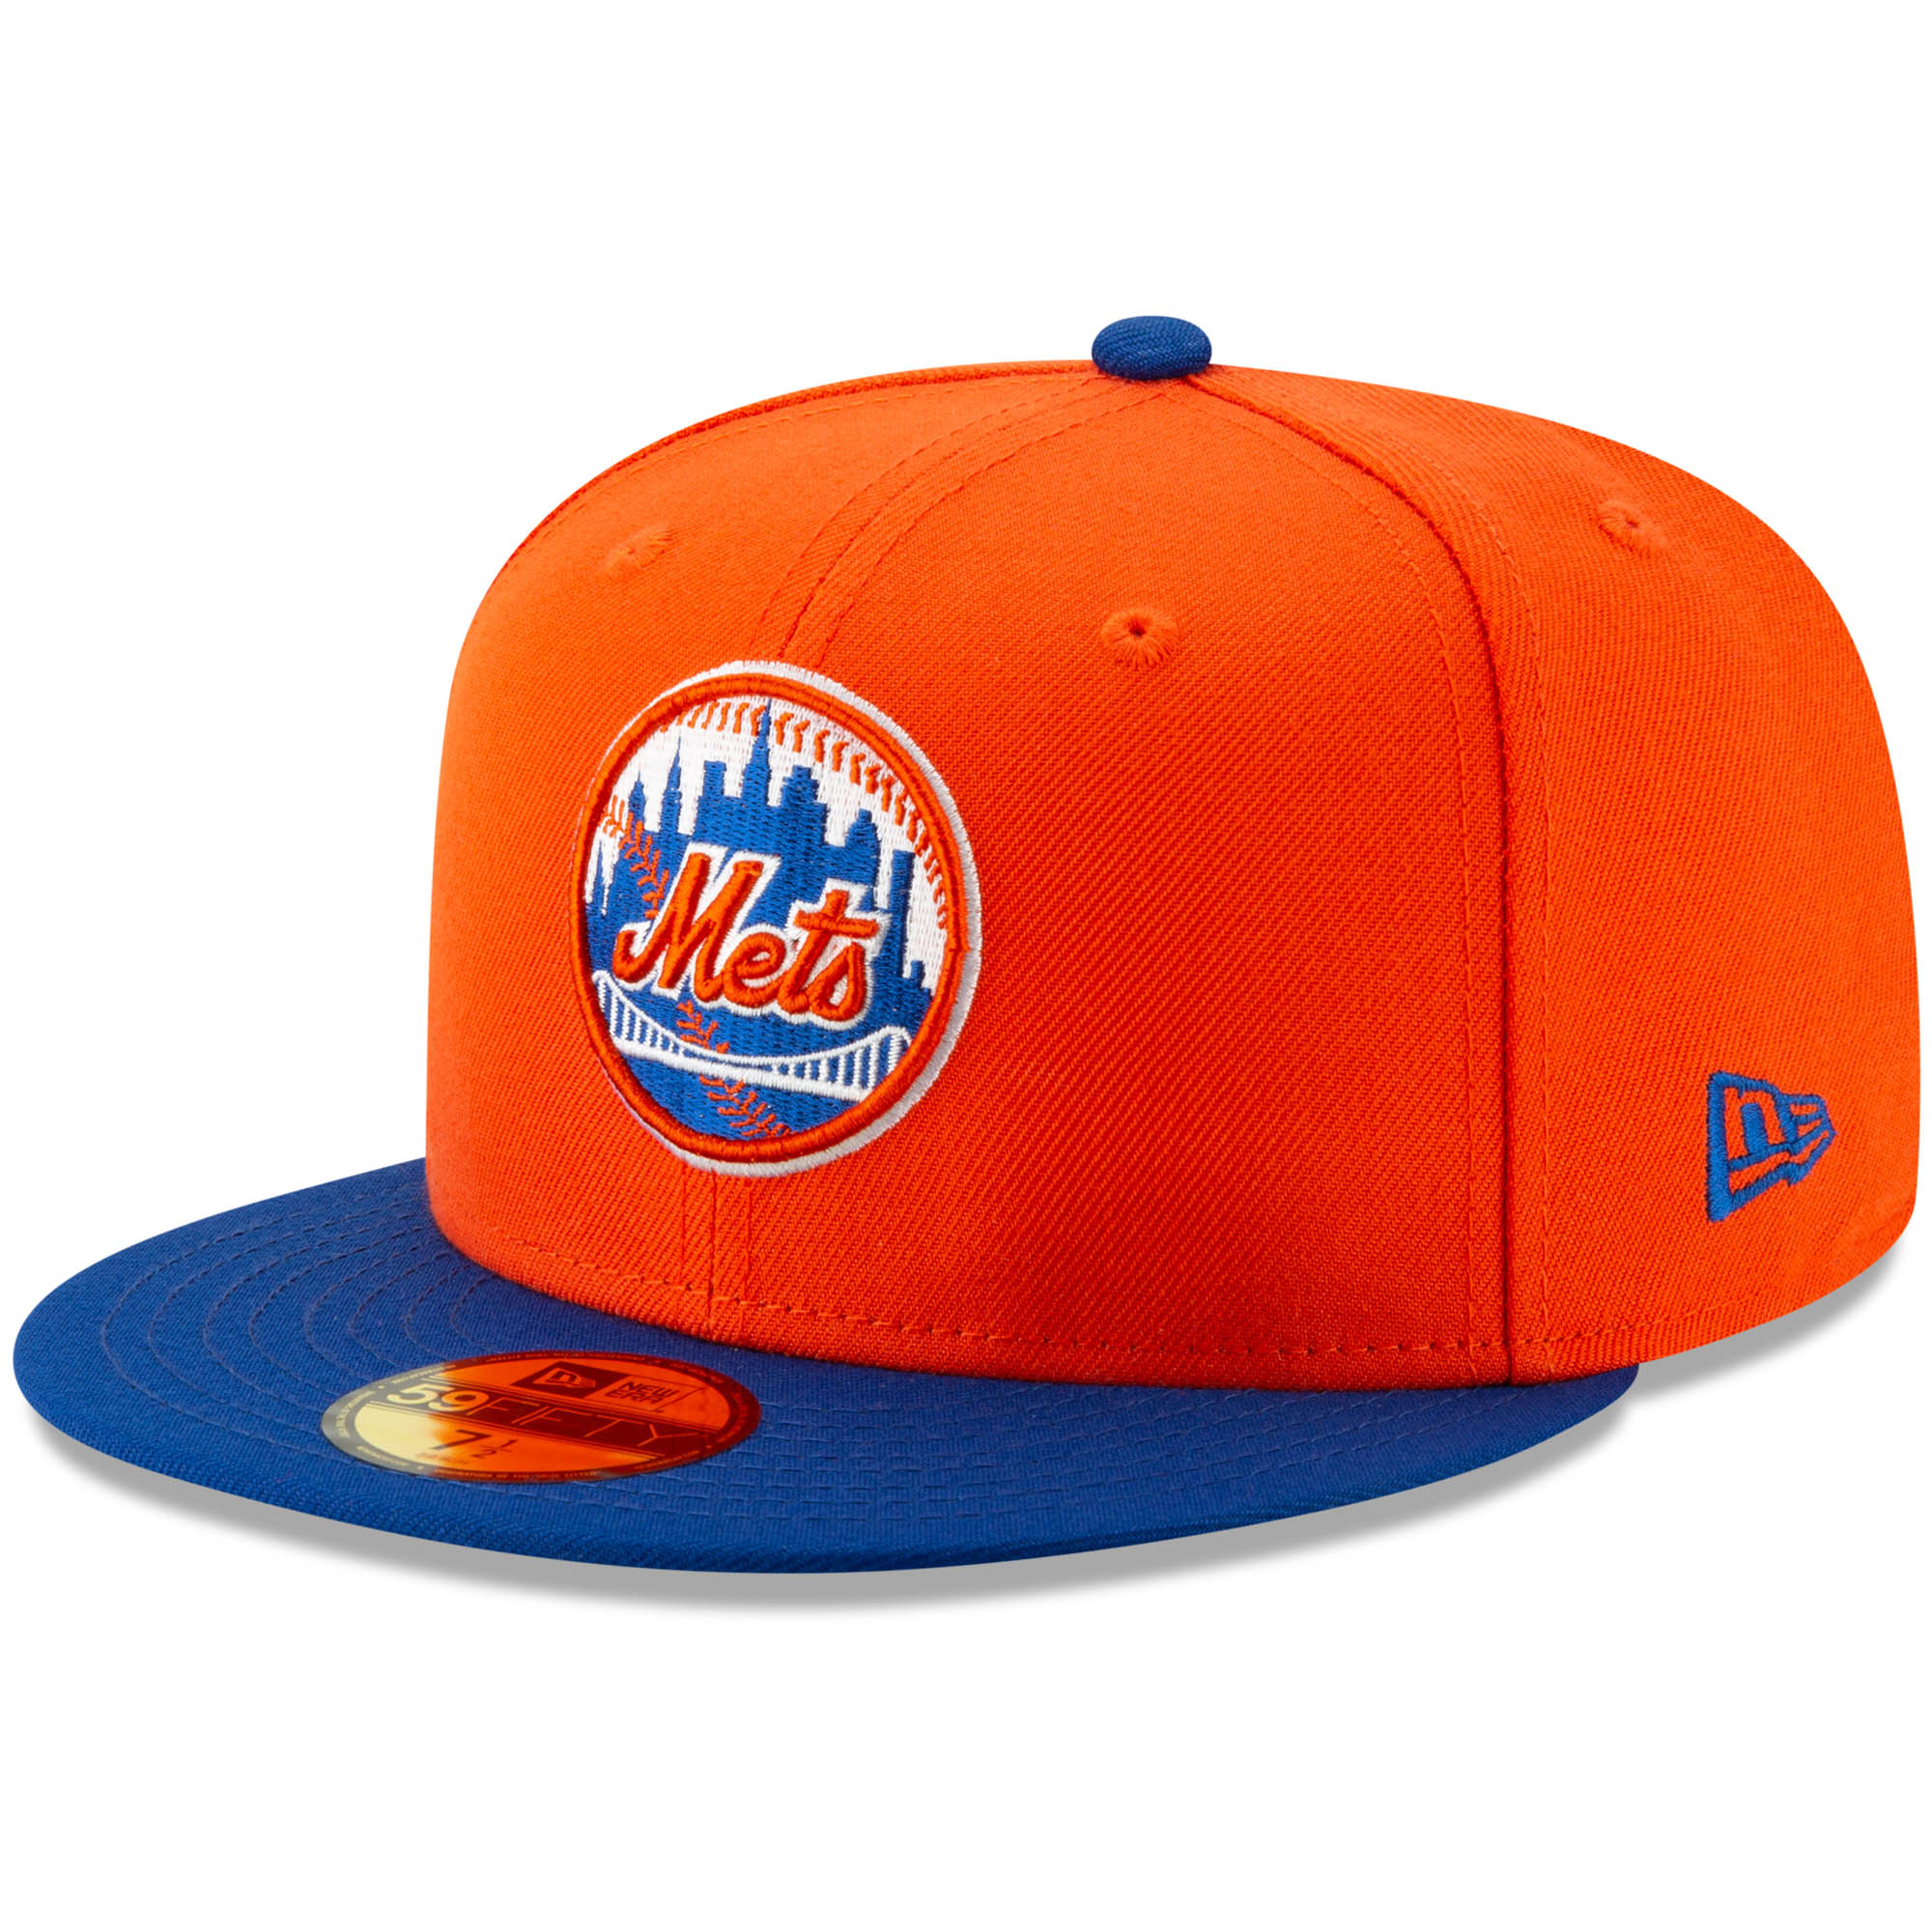 New York Mets New Era Alternate Logo 59FIFTY Fitted Hat - Orange